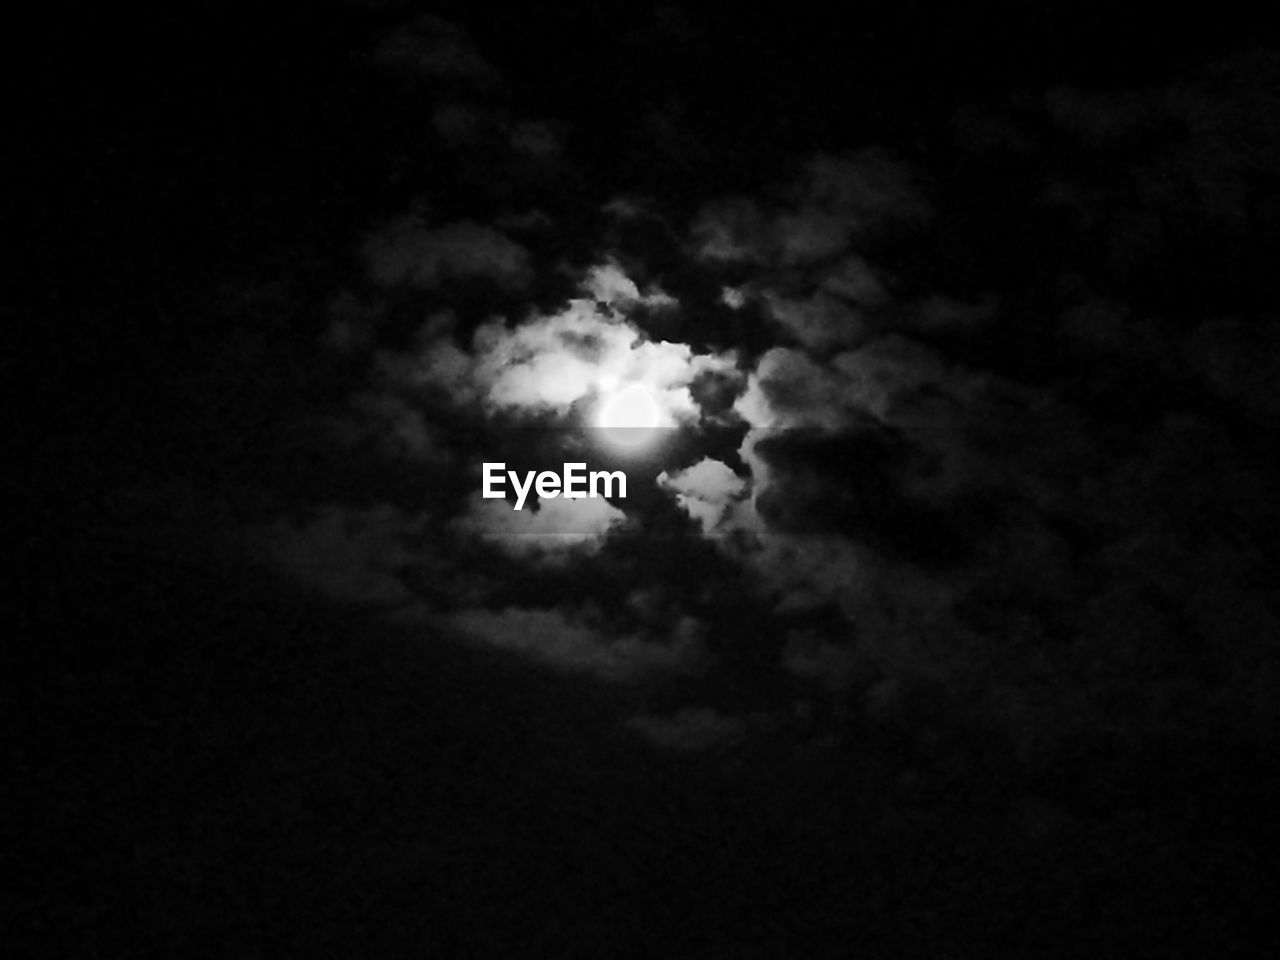 sky, night, low angle view, cloud - sky, moon, nature, no people, space exploration, outdoors, beauty in nature, scenics, sky only, astronomy, space, crescent